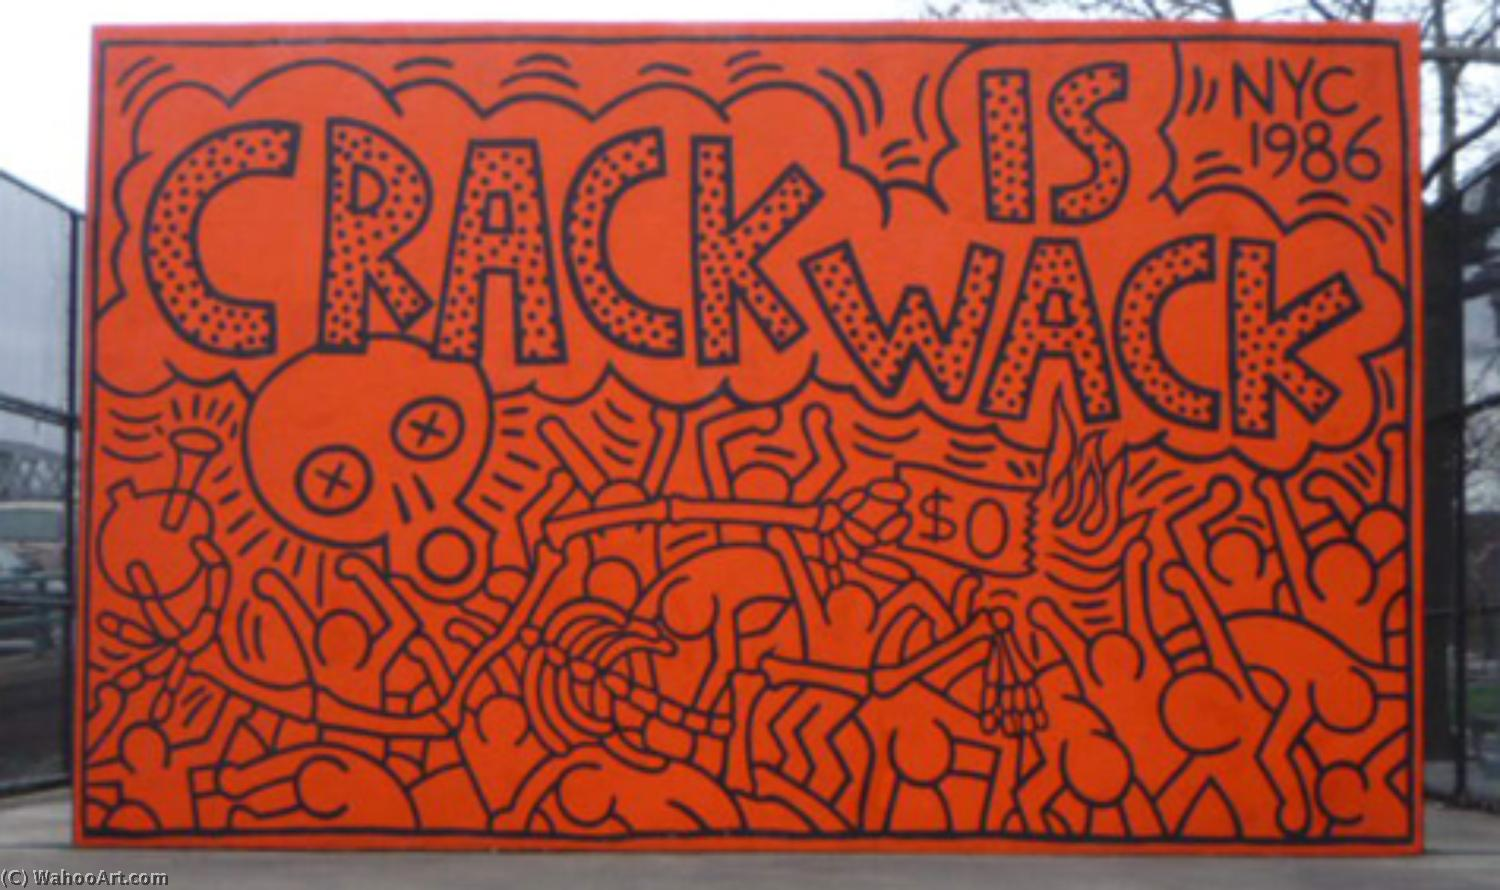 famous painting Crepa è wack of Keith Haring